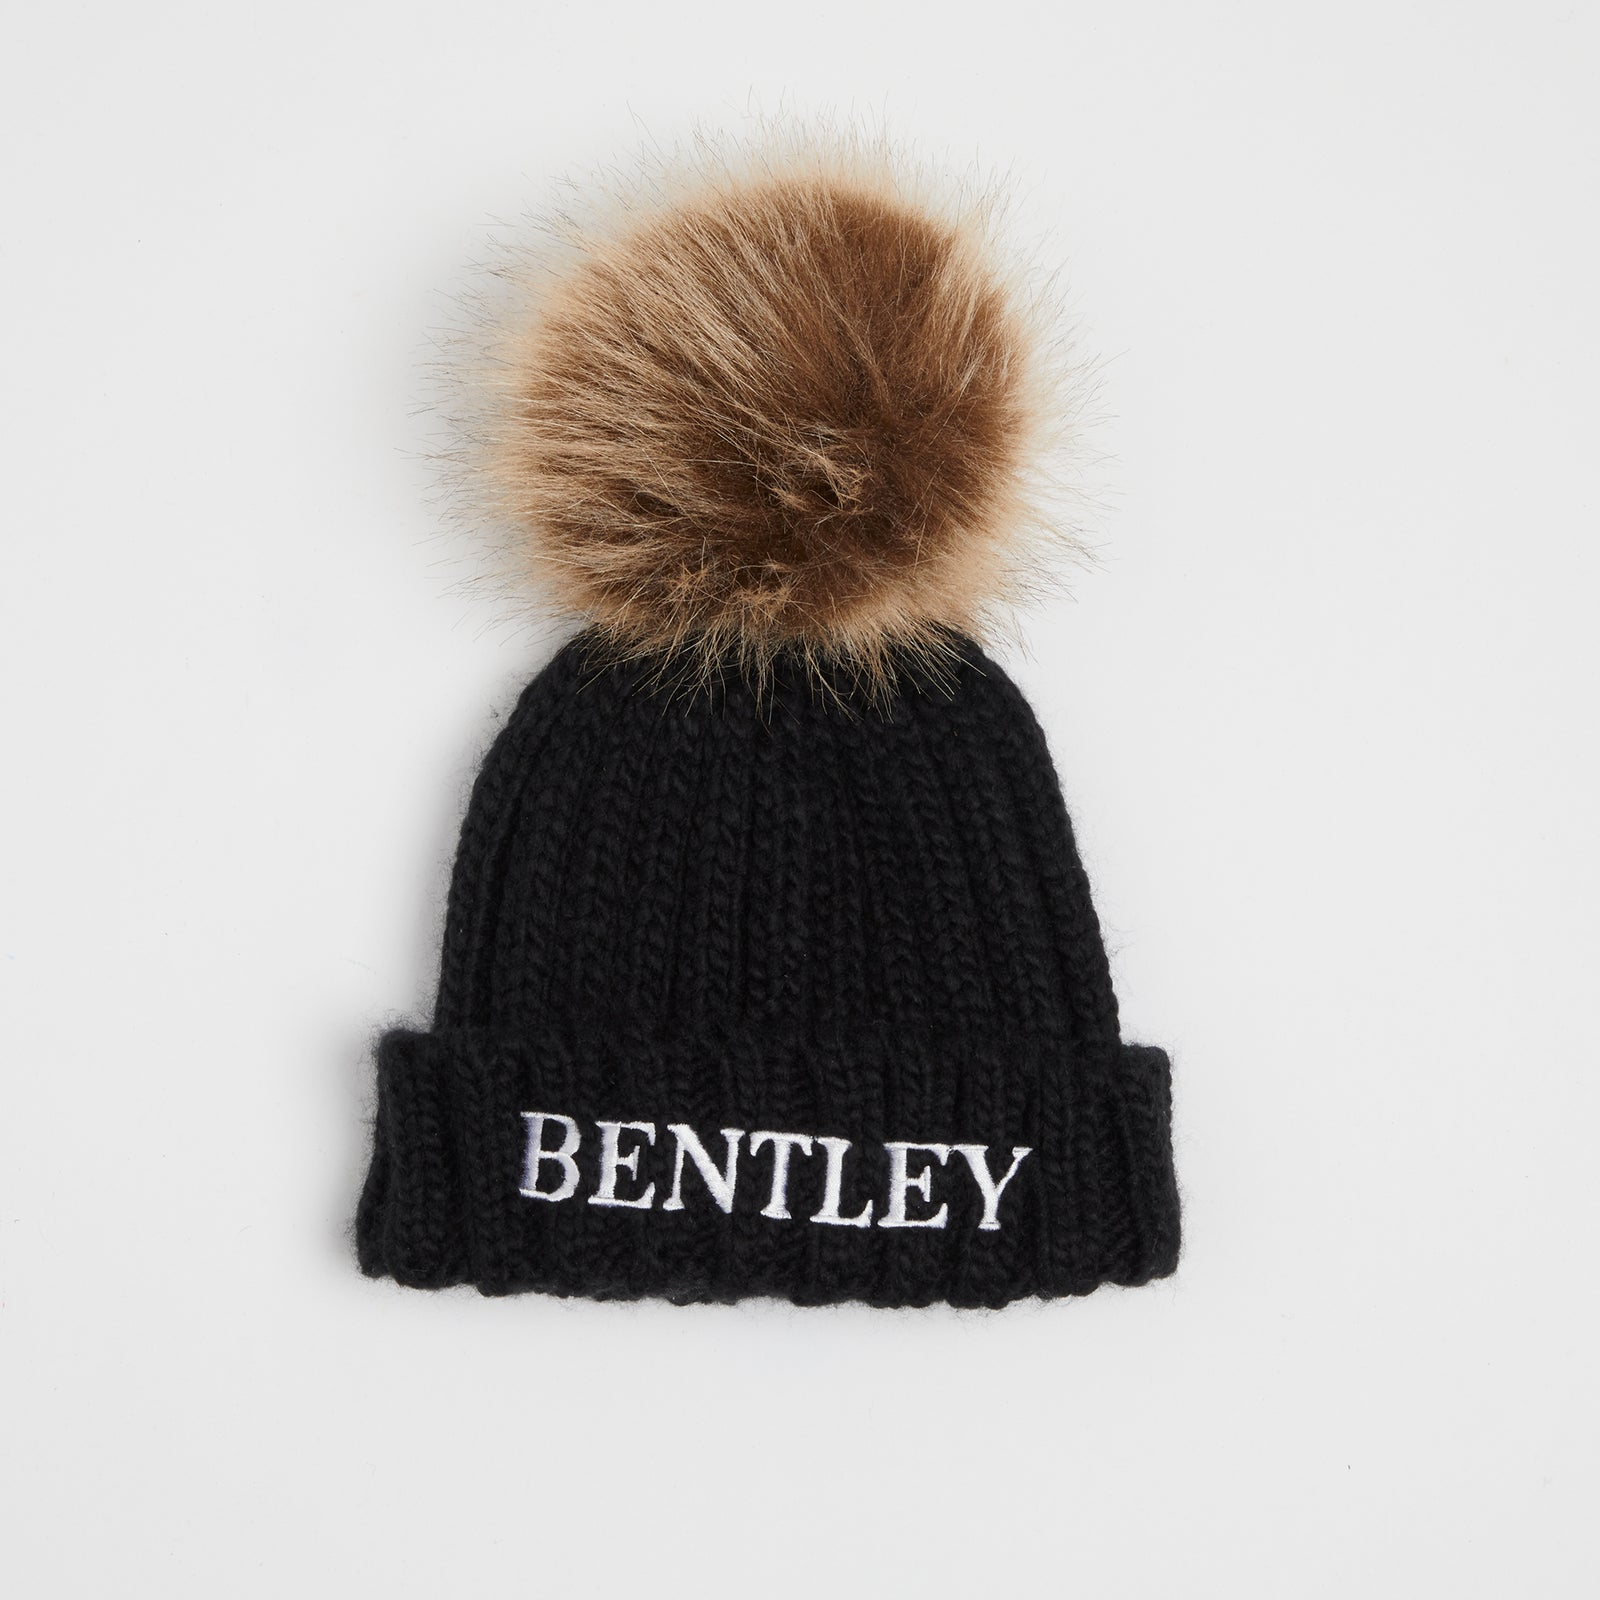 Embroidered Black Pom Pom Hat